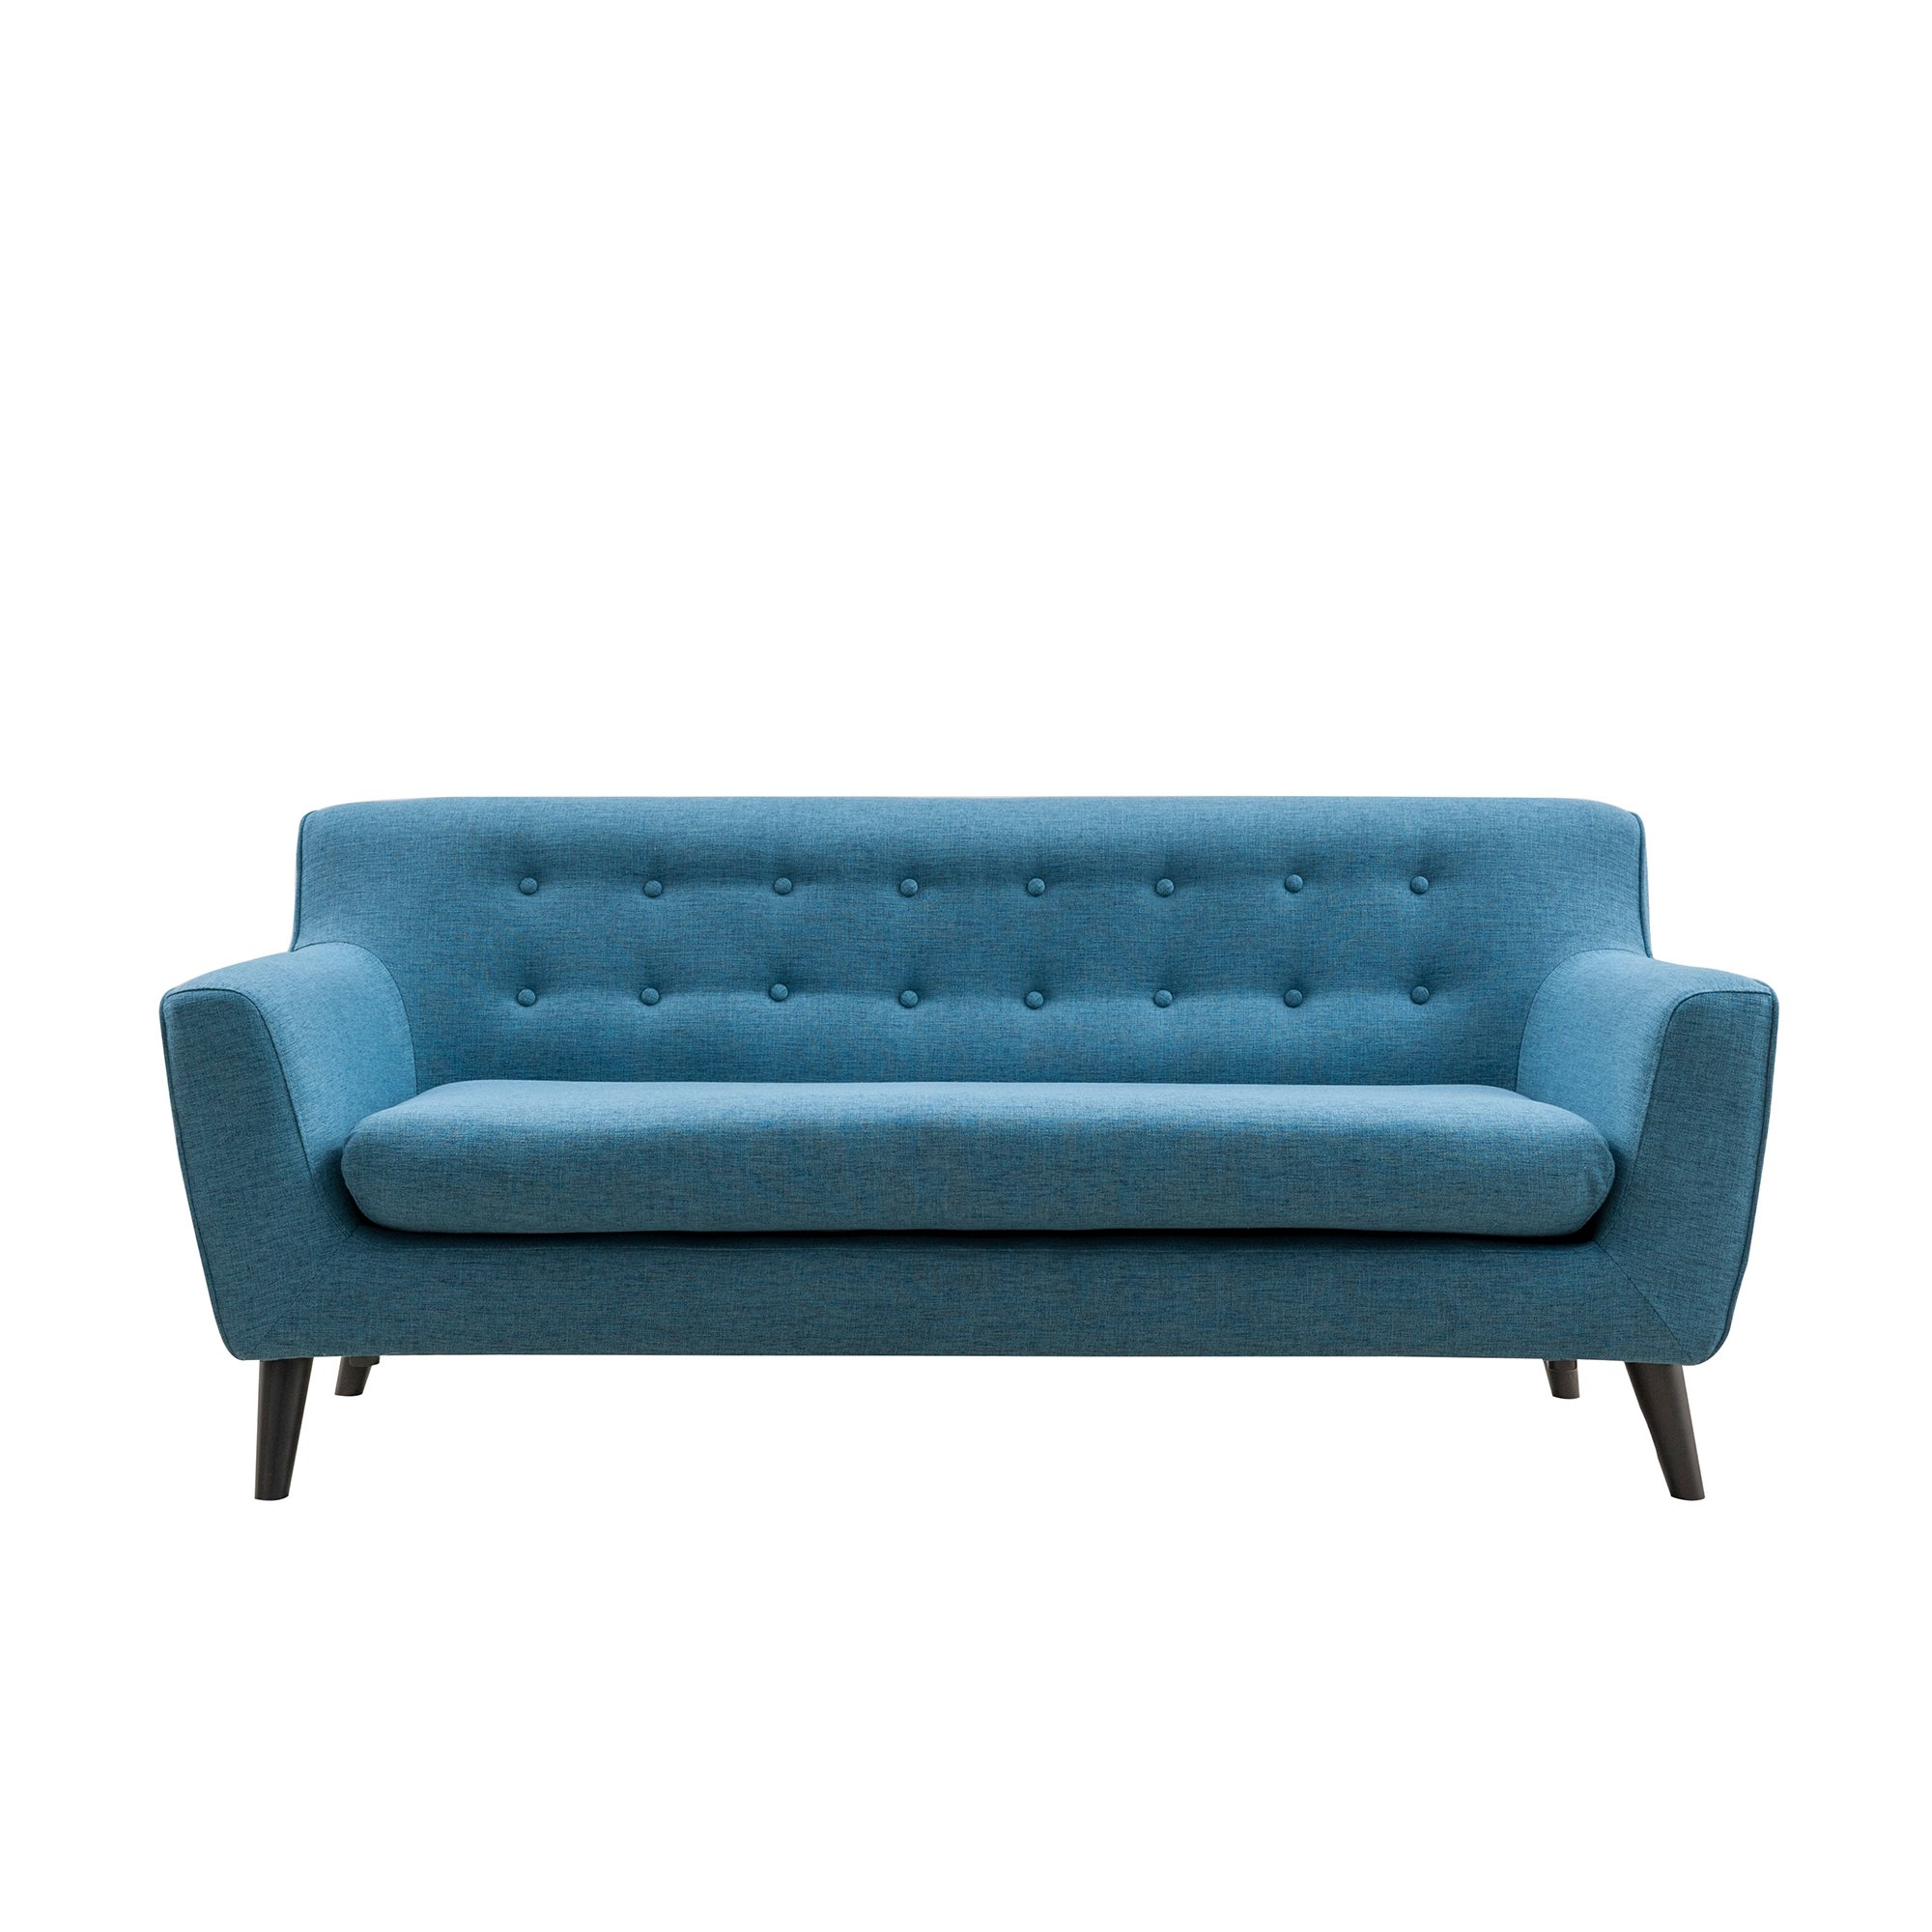 Magari Furniture Mid Century Modern Living RoomCouch Fabric Upholstered Classic Tufted Three Person Sofa, Indigo blue by Magari